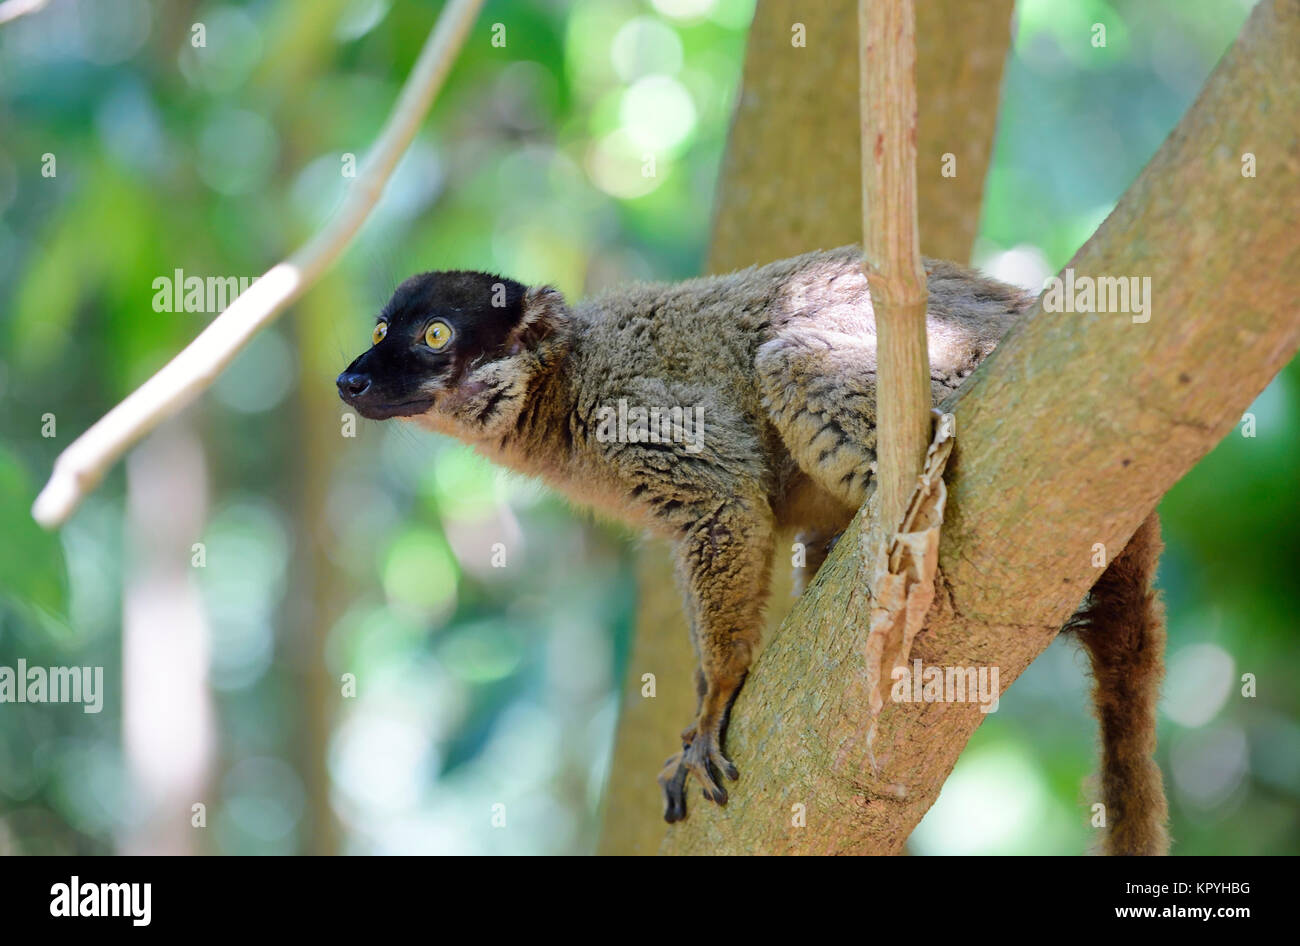 Common brown lemur (Eulemur fulvus), Tanikely national park, Nosy Tanikely, Madagascar - Stock Image